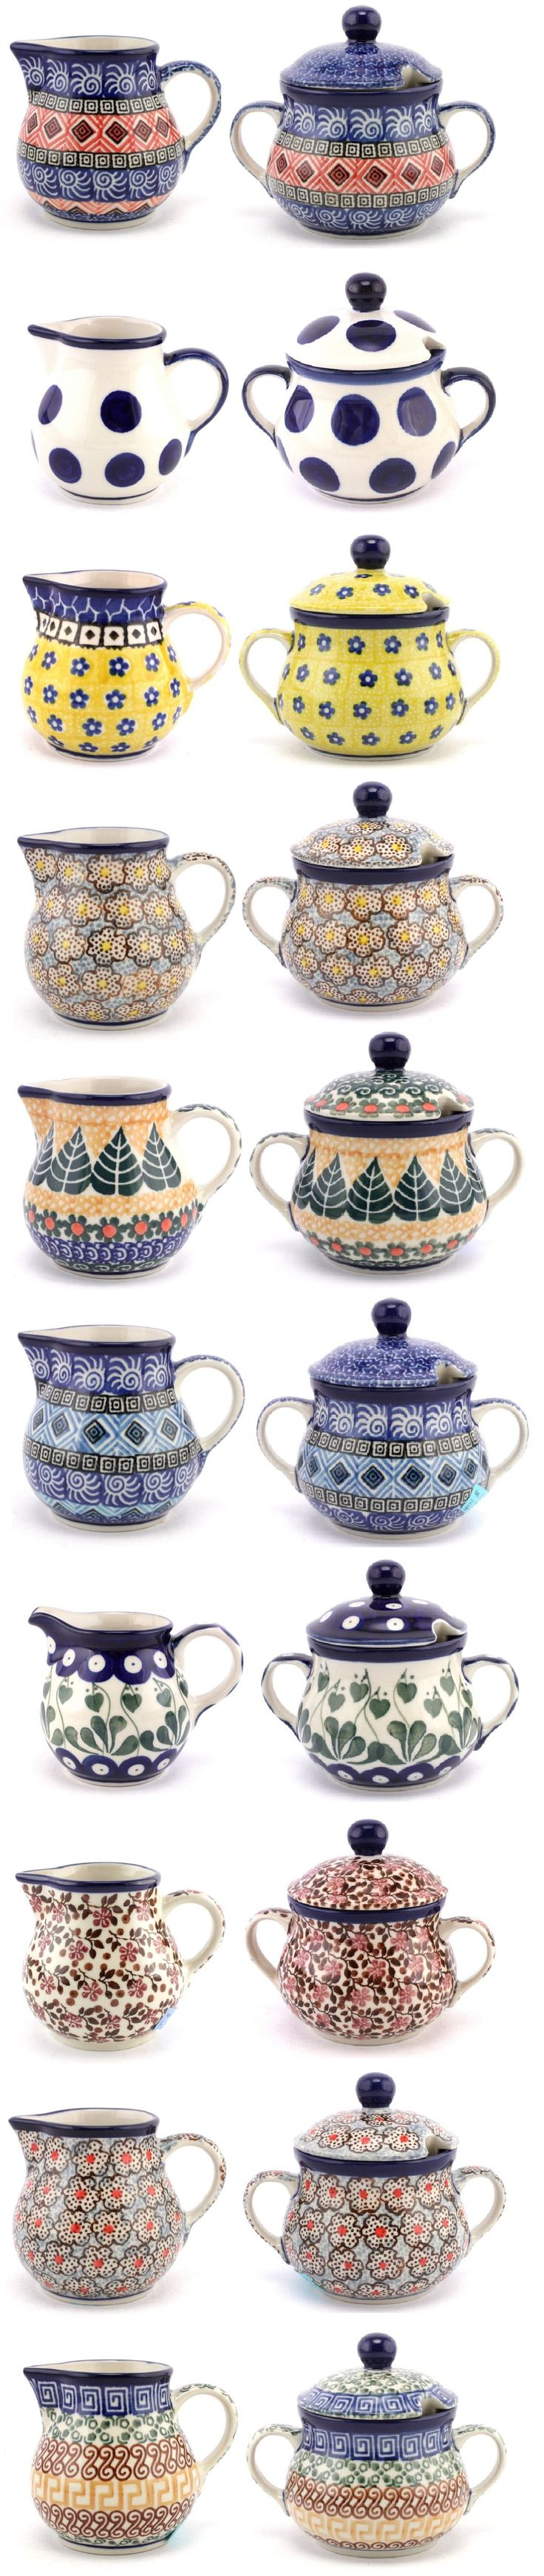 These pairs of creamers and sugar bowls are waiting for you now at our online store. And we have so many other patterns if you prefer to mix! :) Slavica Polish Pottery http://slavicapottery.com/polish-pottery-creamers-sugar-bowls